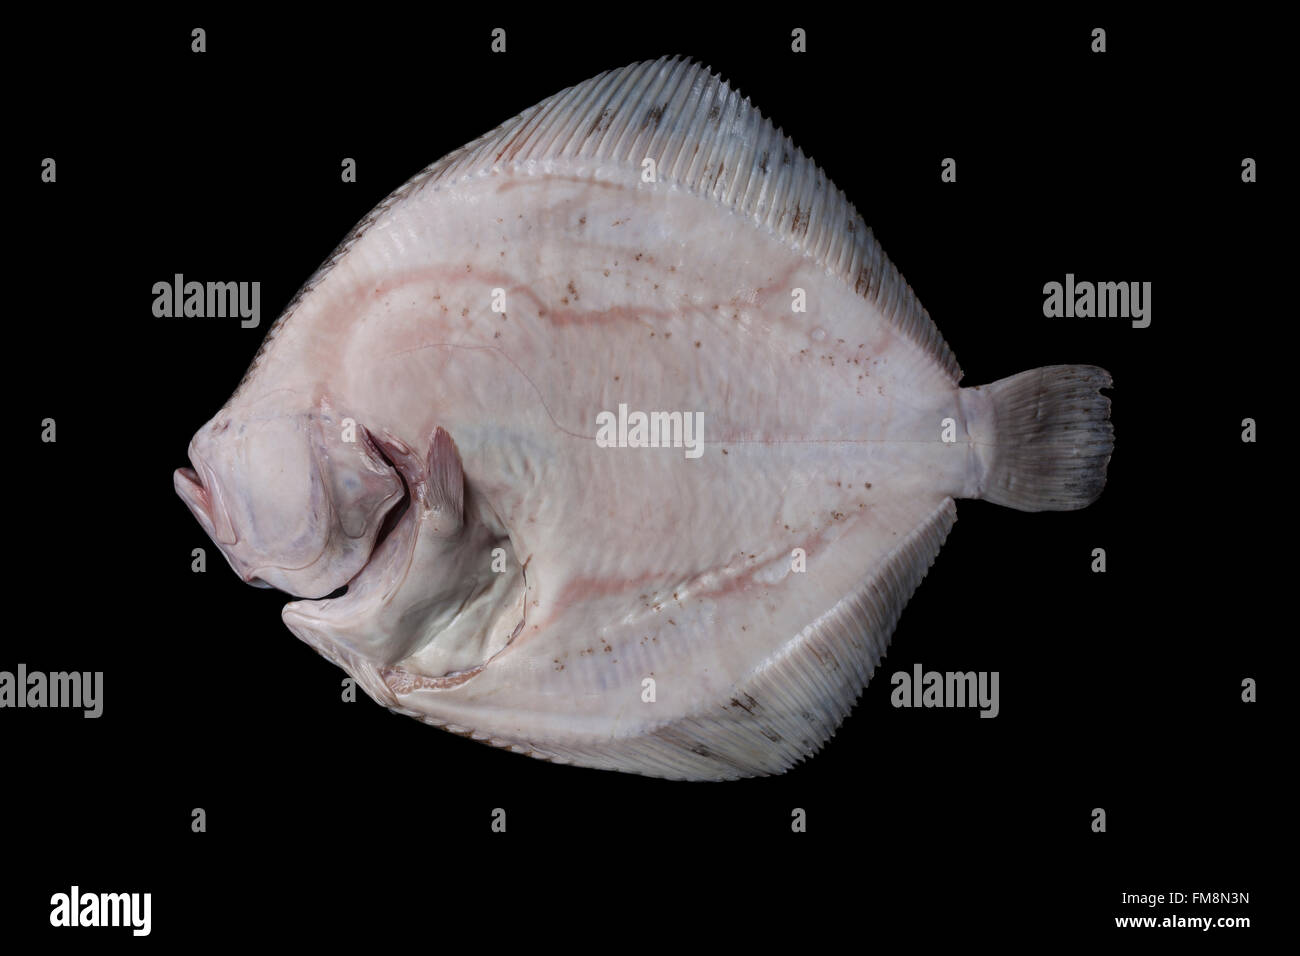 Whole fresh raw disemboweled flatfish bottom side, caught in the Alboran Sea in Spain, isolated on black background. - Stock Image